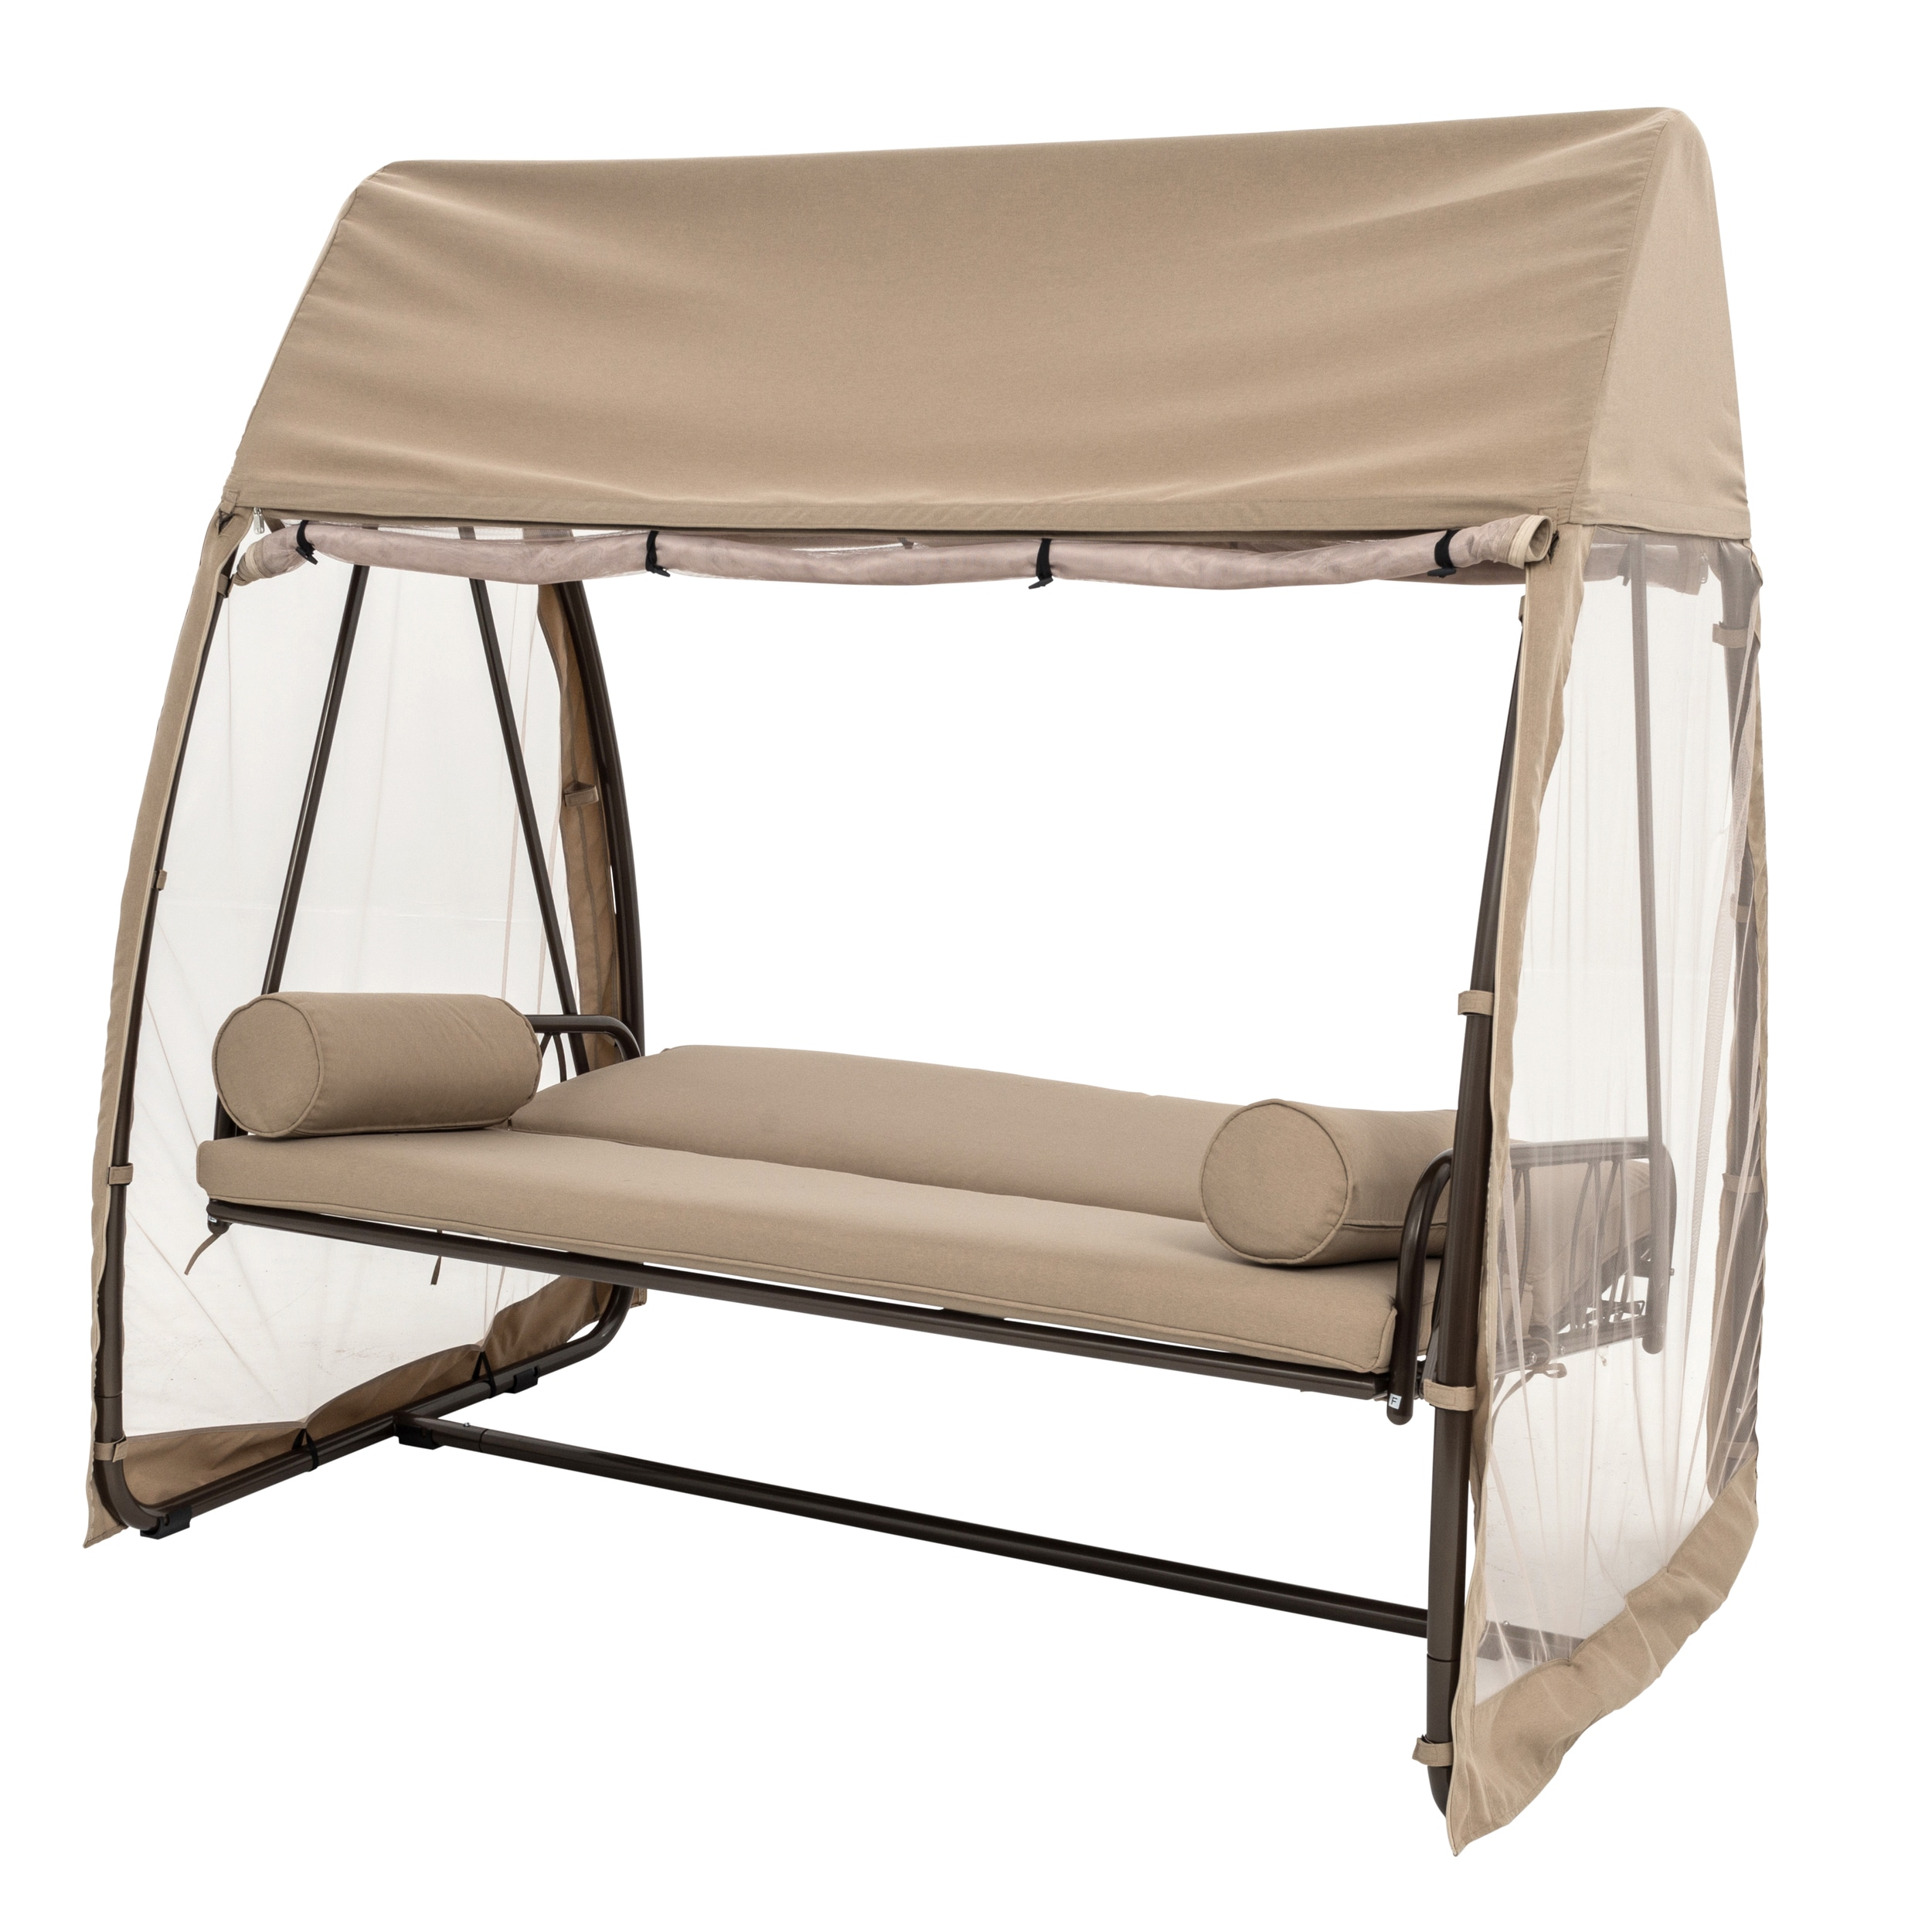 swing bed seater metal outdoor hammock bench var westwood garden chair itm shelter